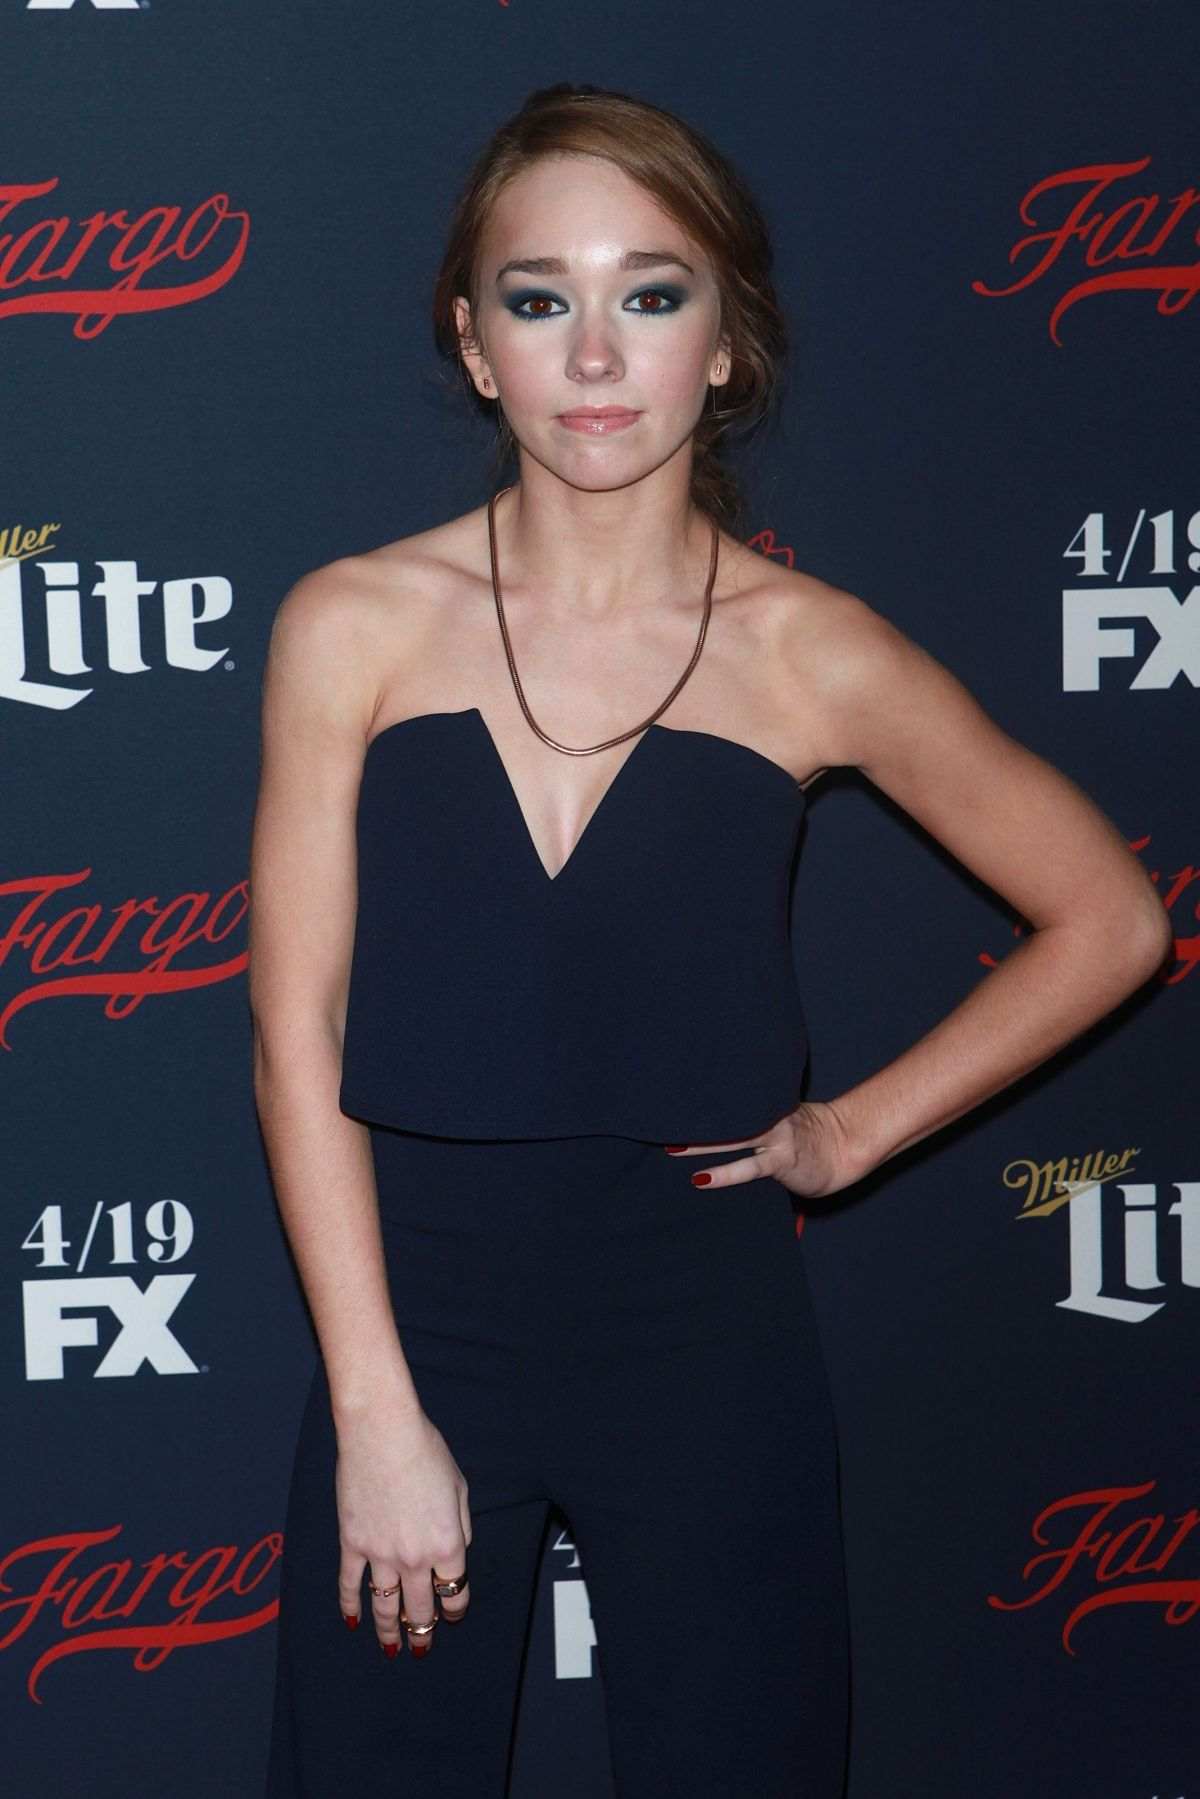 HOLLY TAYLOR at FX Network 2017 All-star Upfront in New York 04/06/2017